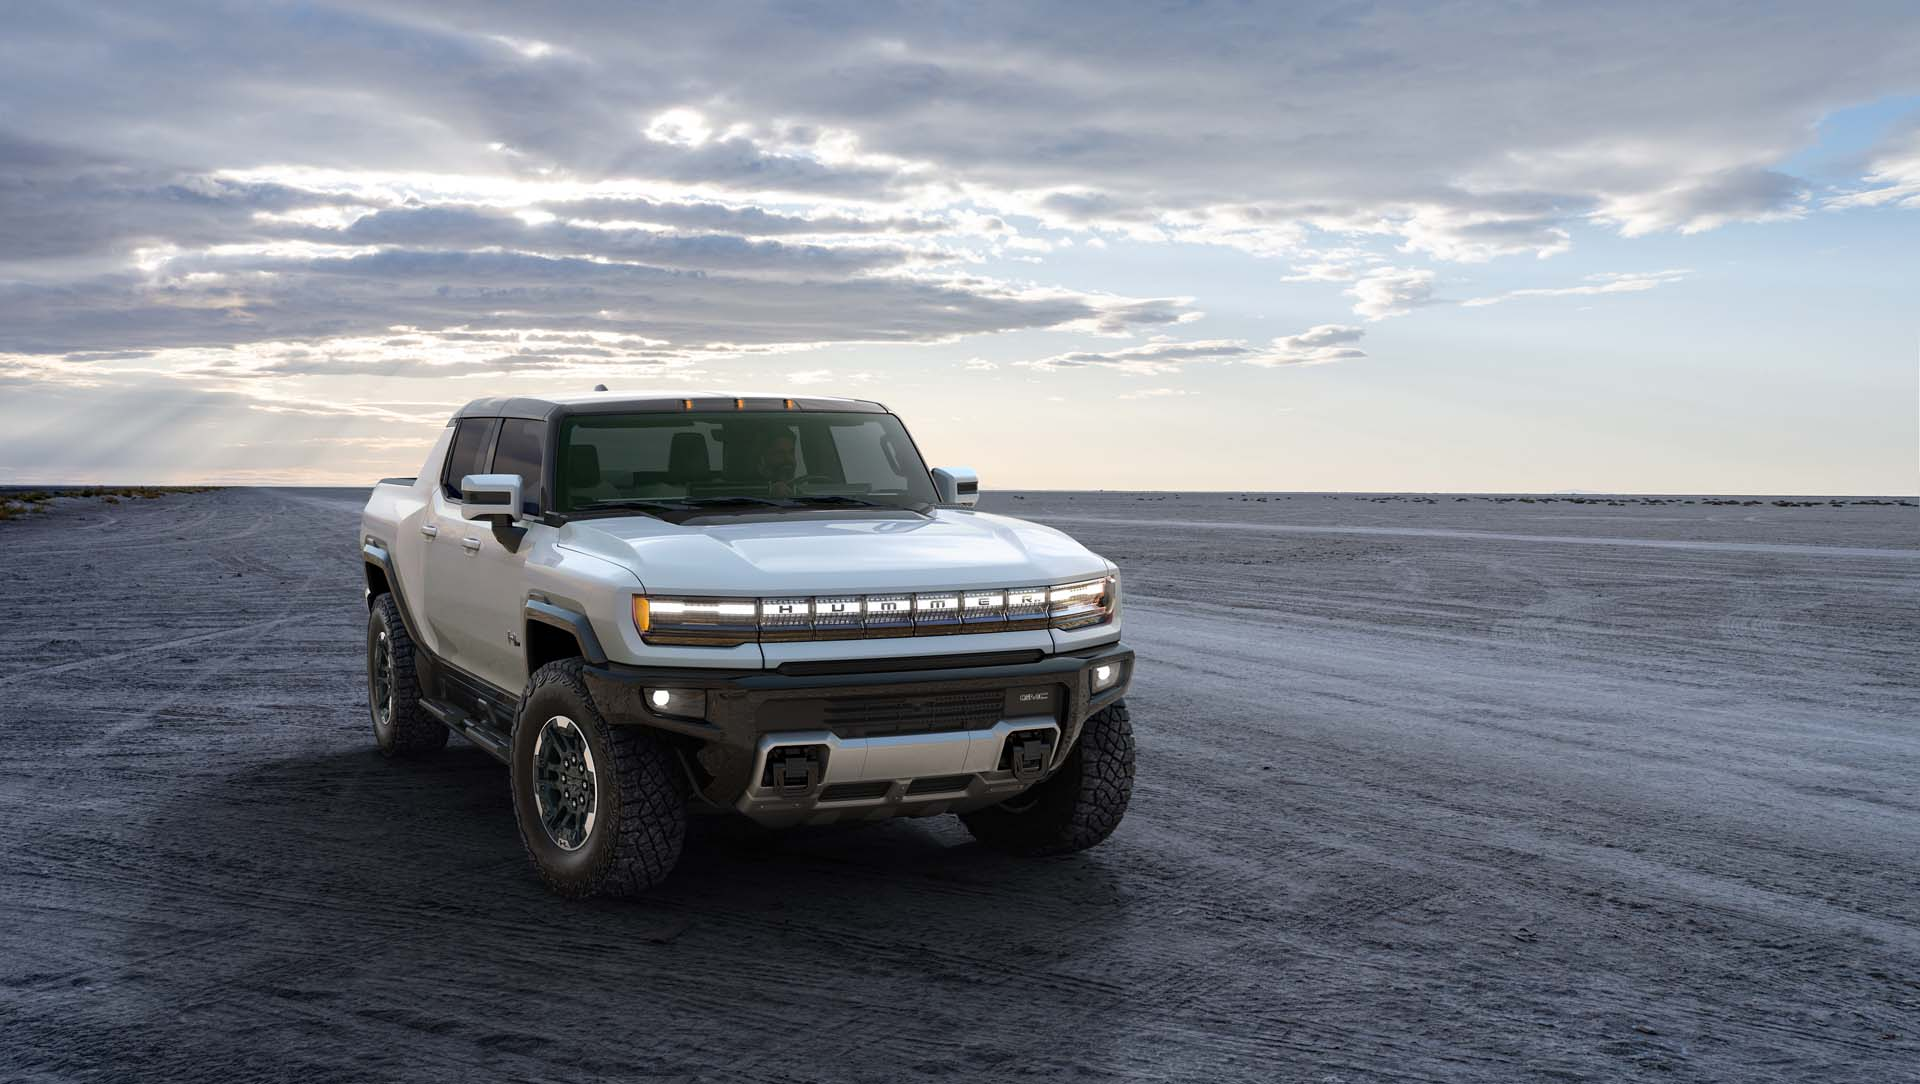 2022 GMC Hummer EV Review, Ratings, Specs, Prices, and ...